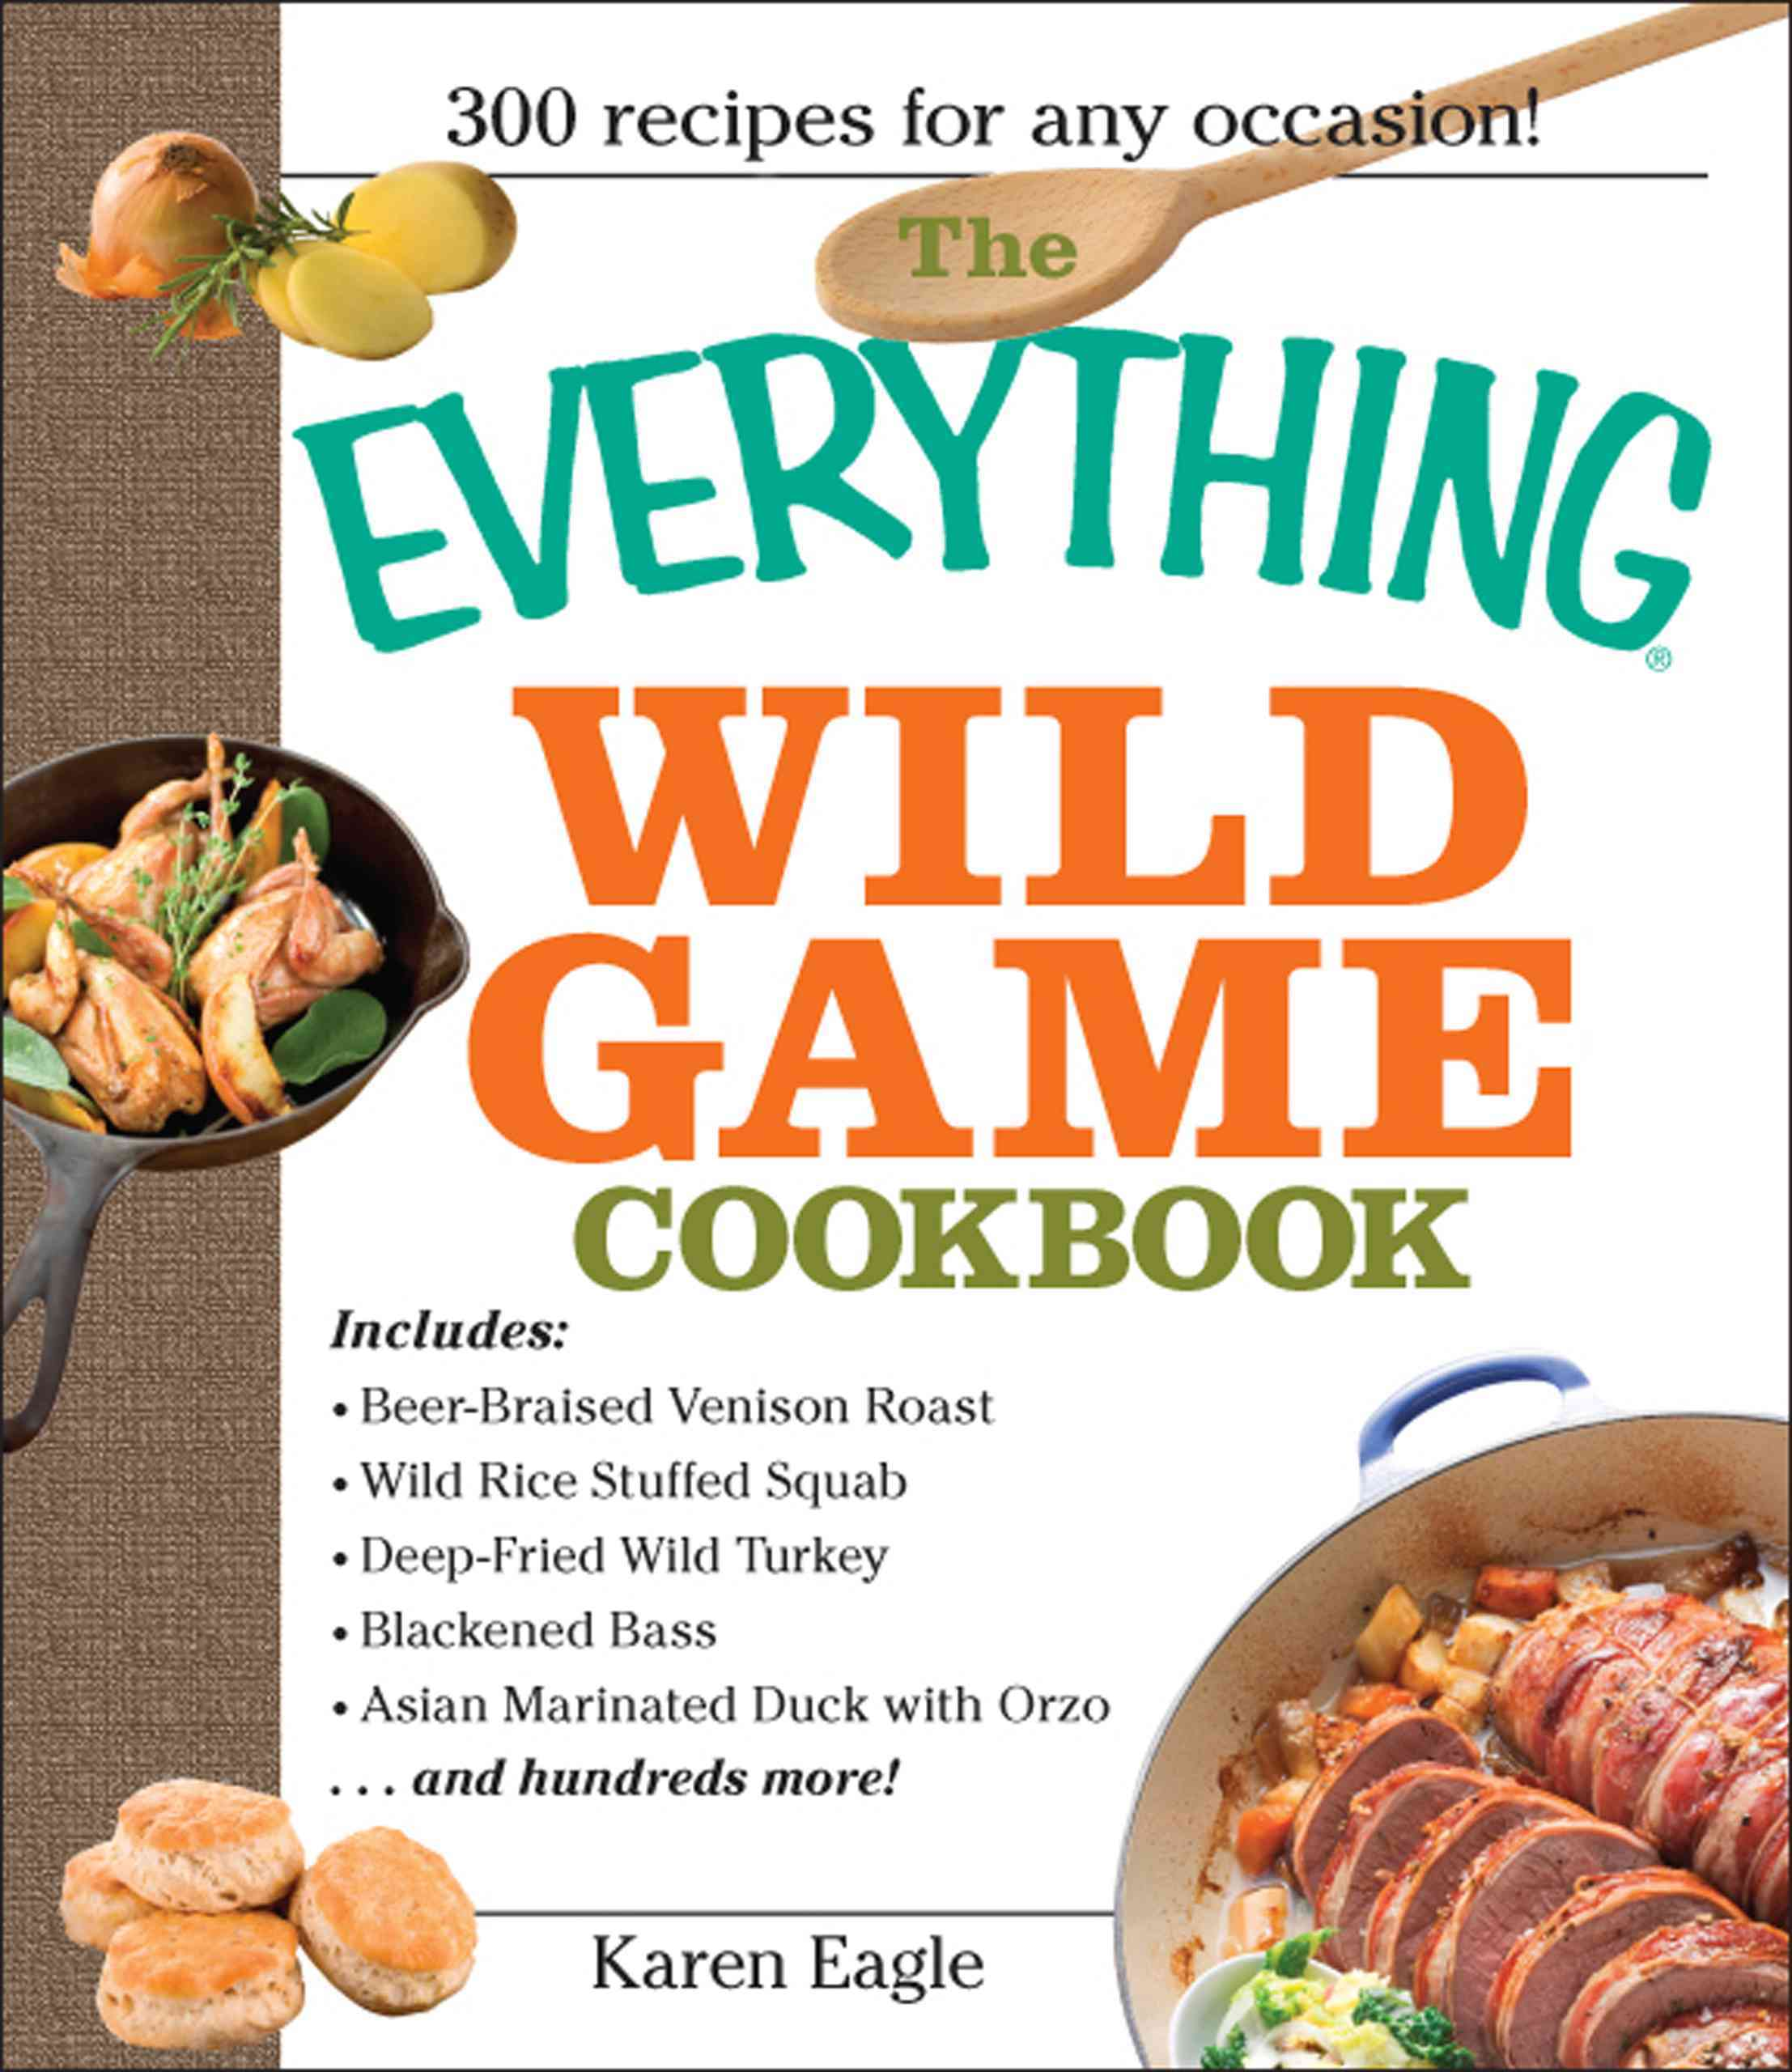 The Everything Wild Game Cookbook: From Fowl And Fish to Rabbit And Venison--300 Recipes for Home-cooked Meals (Paperback)